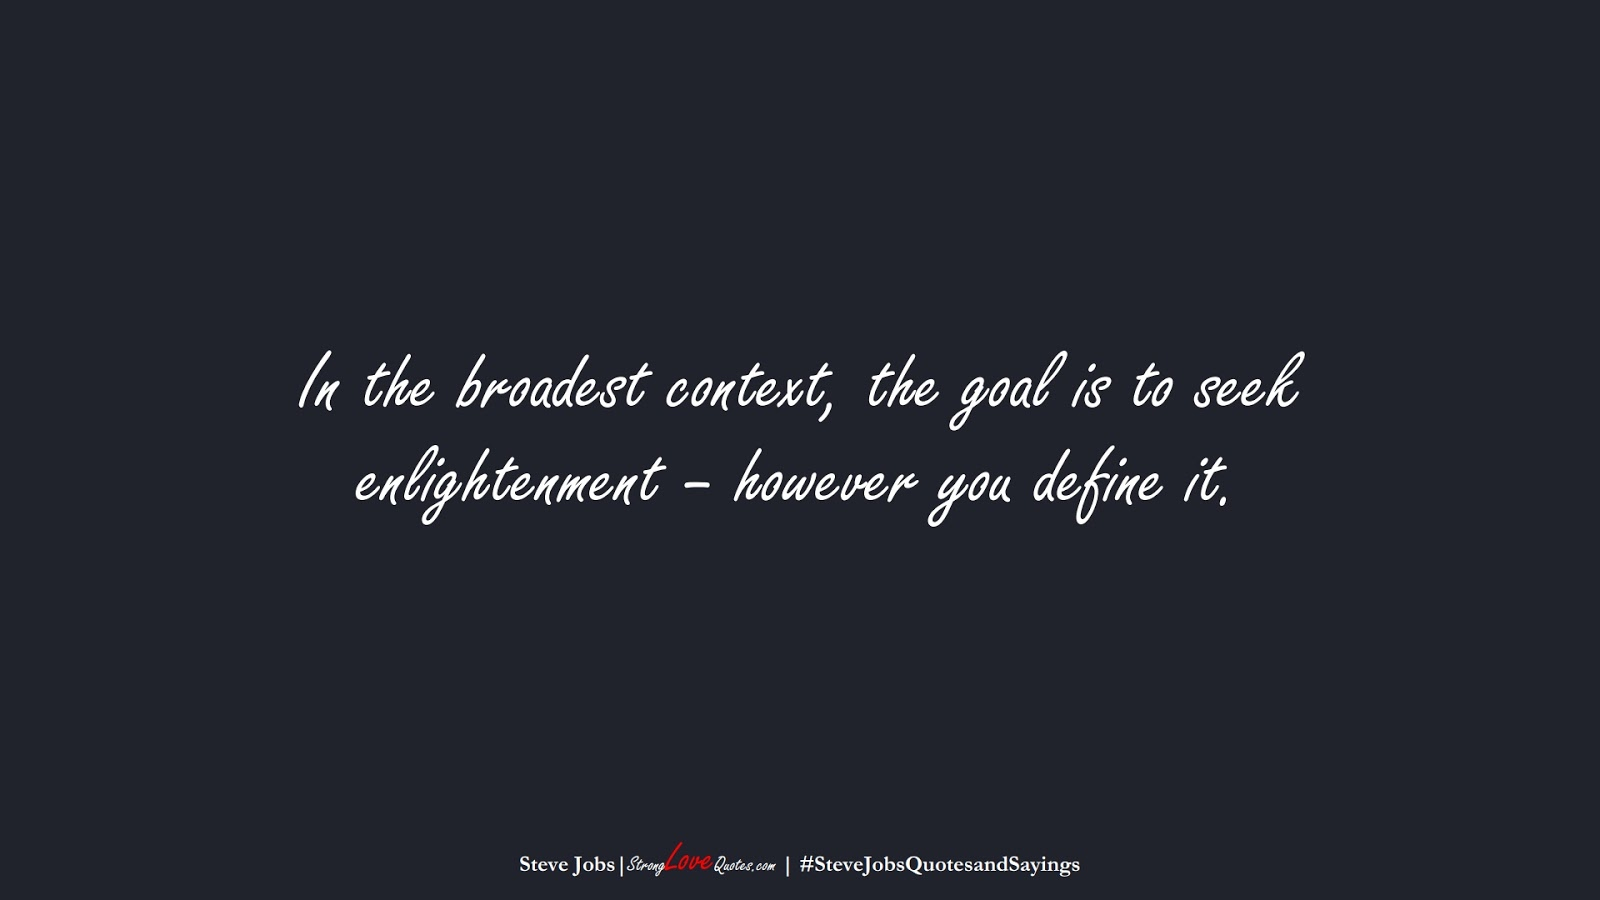 In the broadest context, the goal is to seek enlightenment – however you define it. (Steve Jobs);  #SteveJobsQuotesandSayings